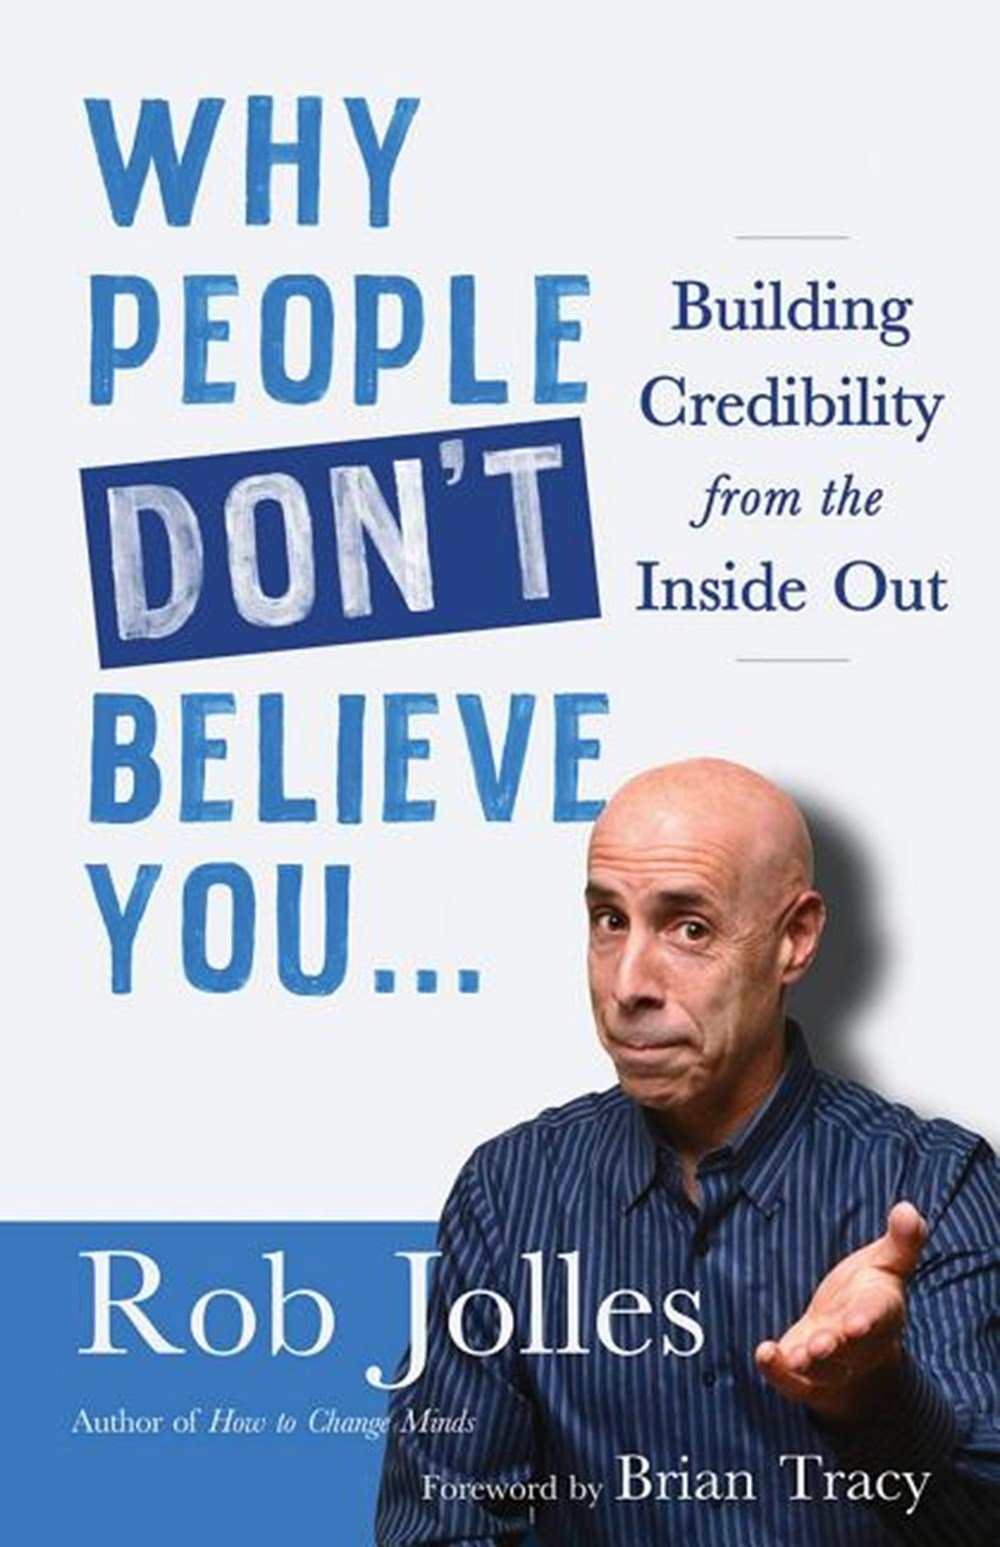 Why People Don't Believe You... Building Credibility from the Inside Out